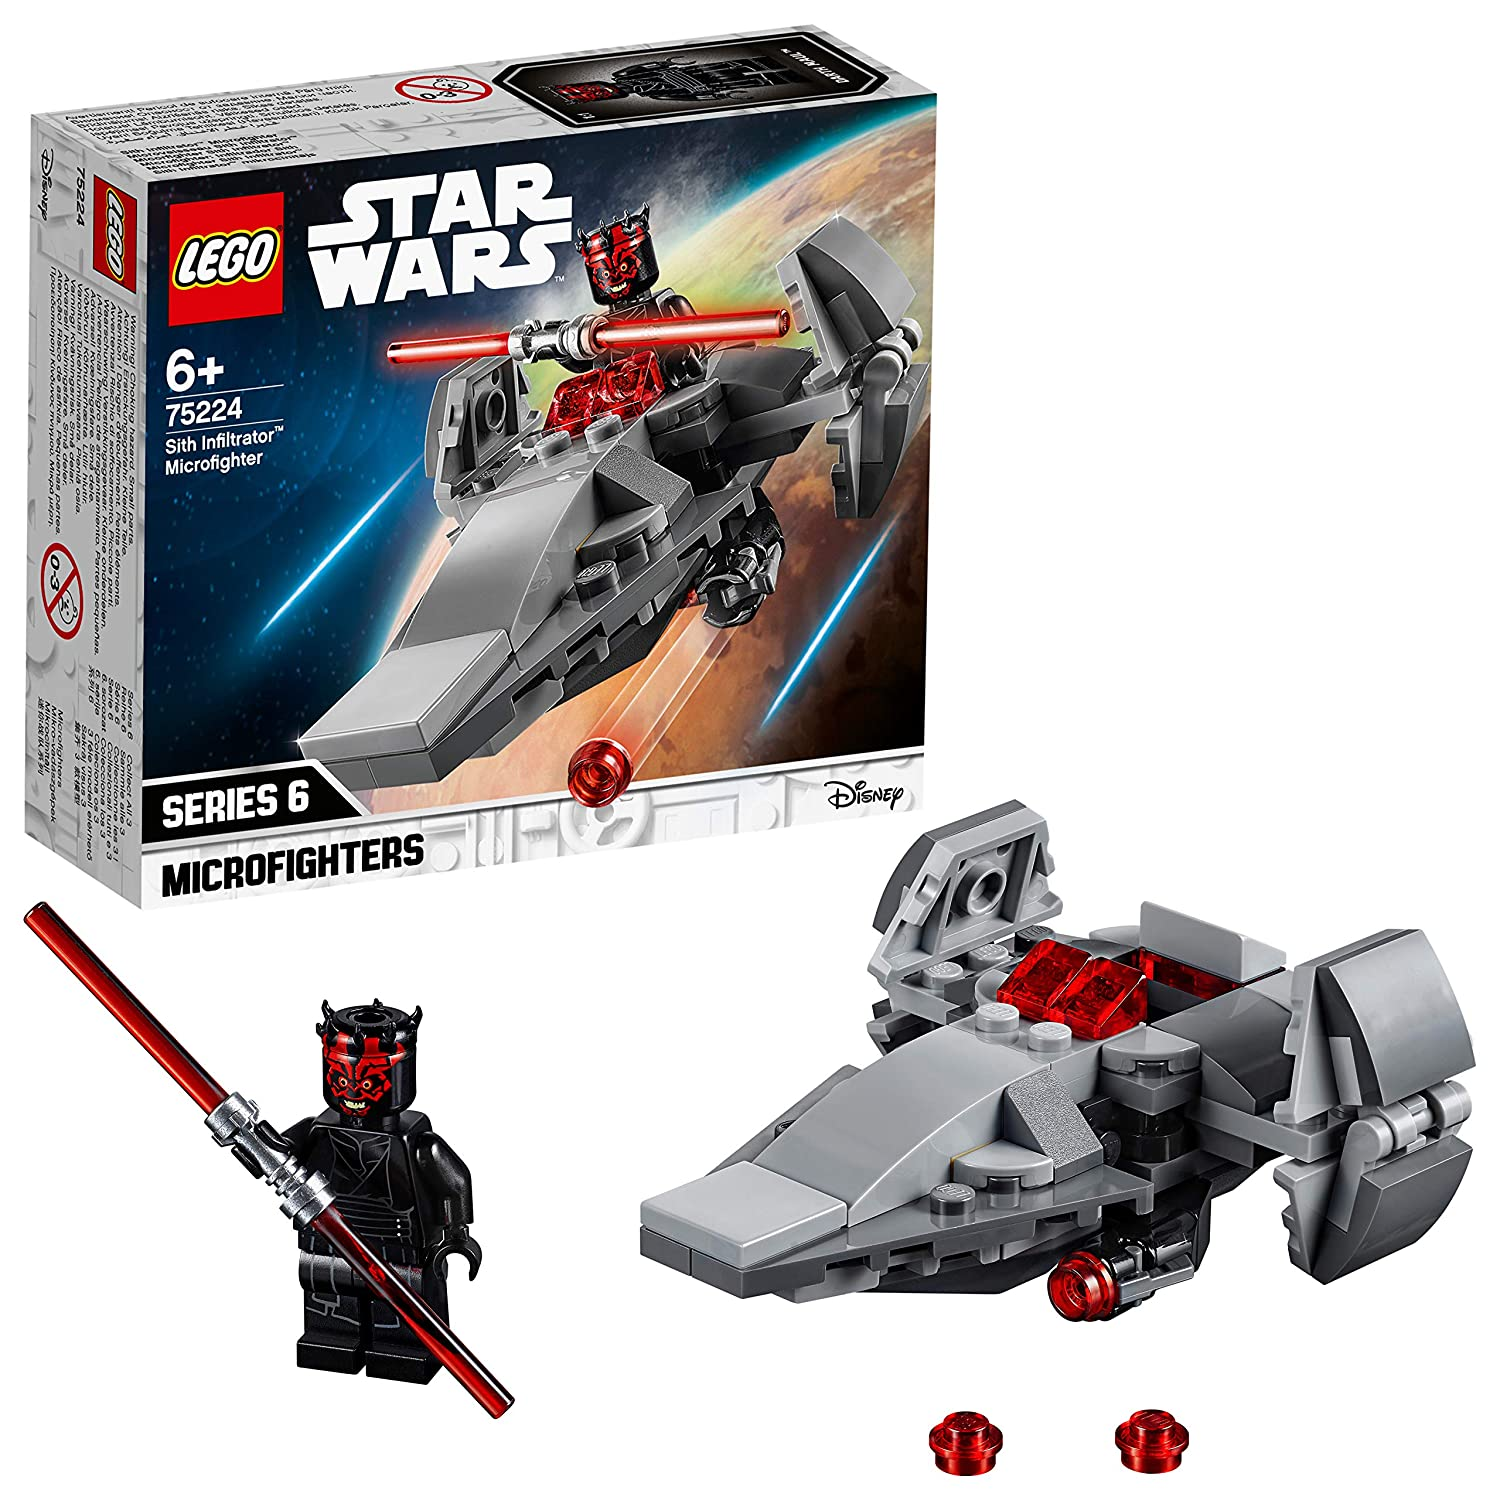 LEGOStar Wars™ 75224 Sith Infiltrator™ Microfighter